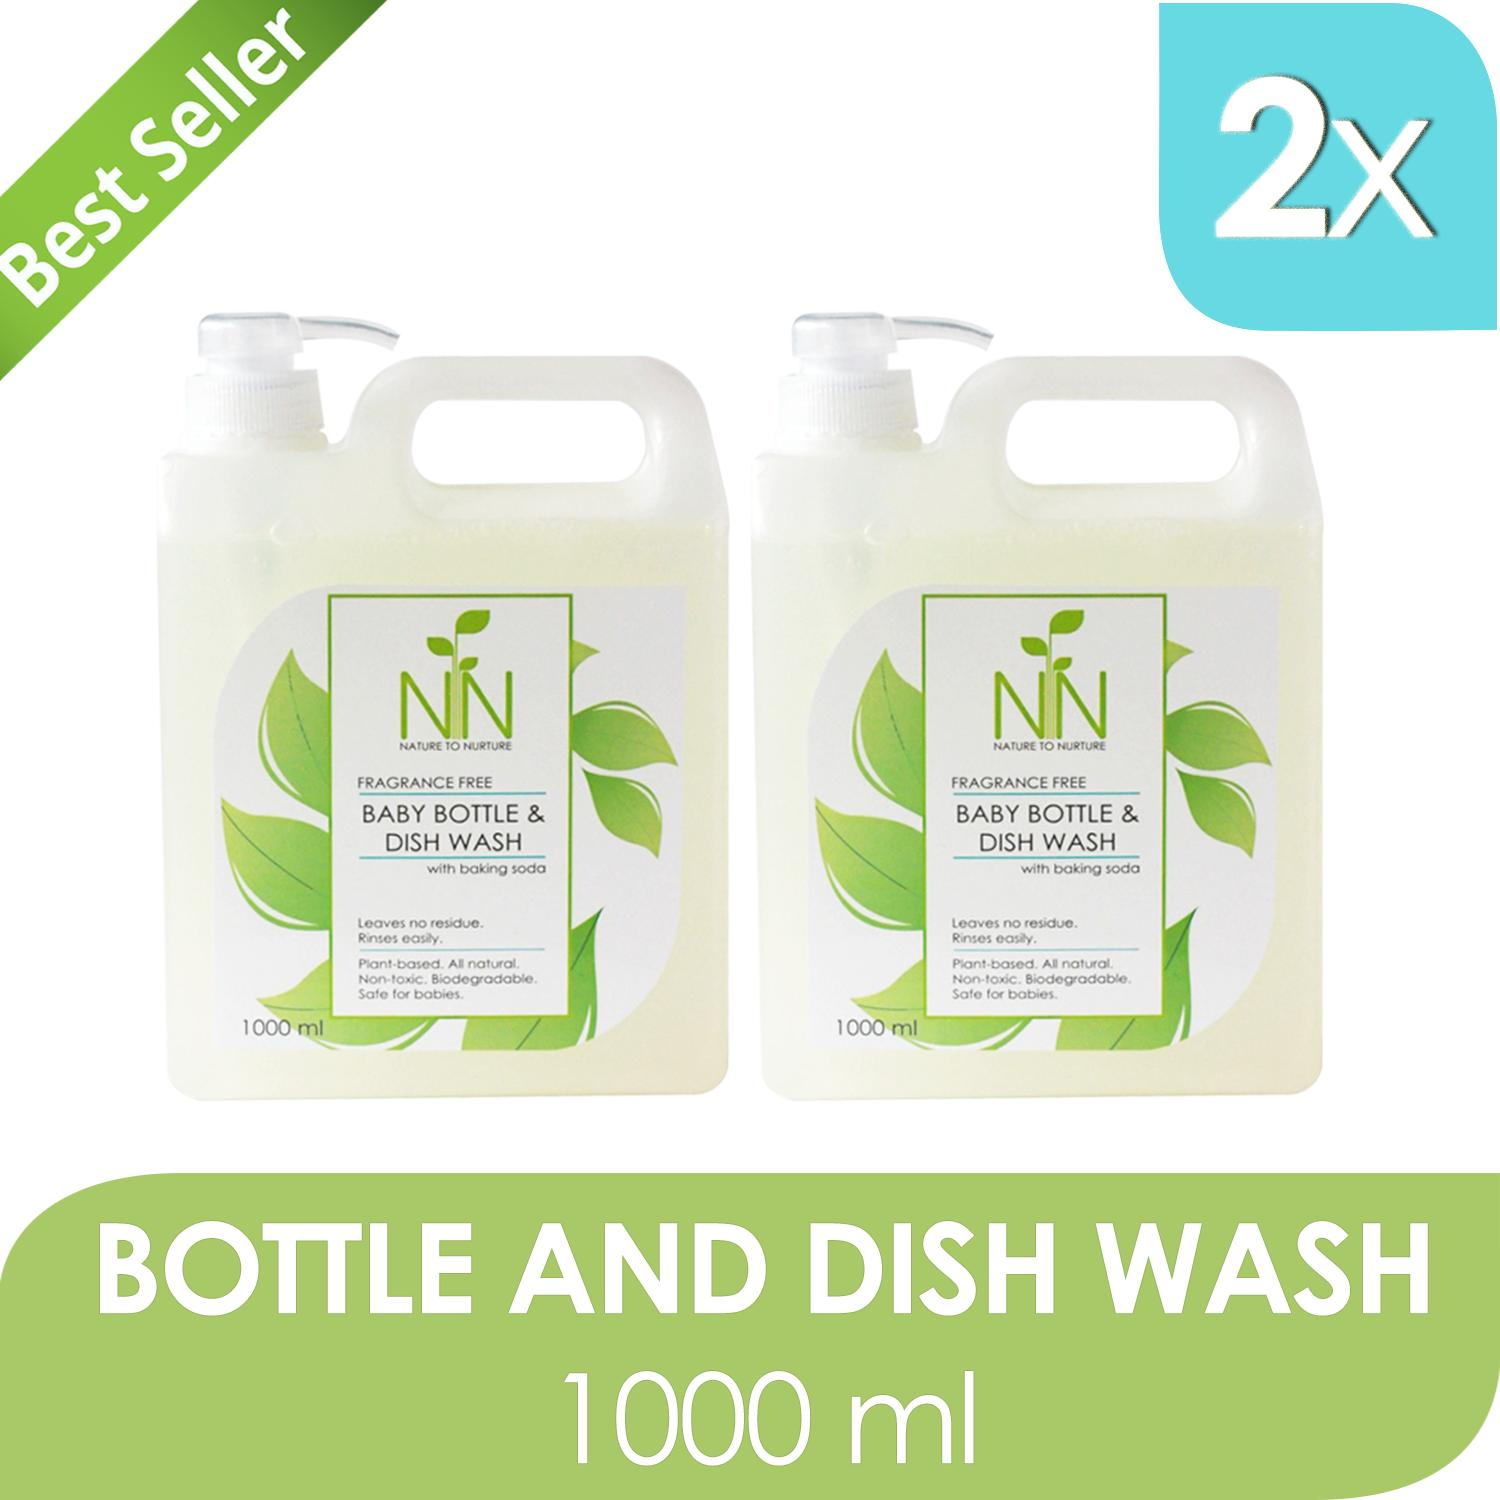 Nature To Nurture Baby Bottle And Dish Wash 1000ml, Set Of 2 By Nature To Nurture.